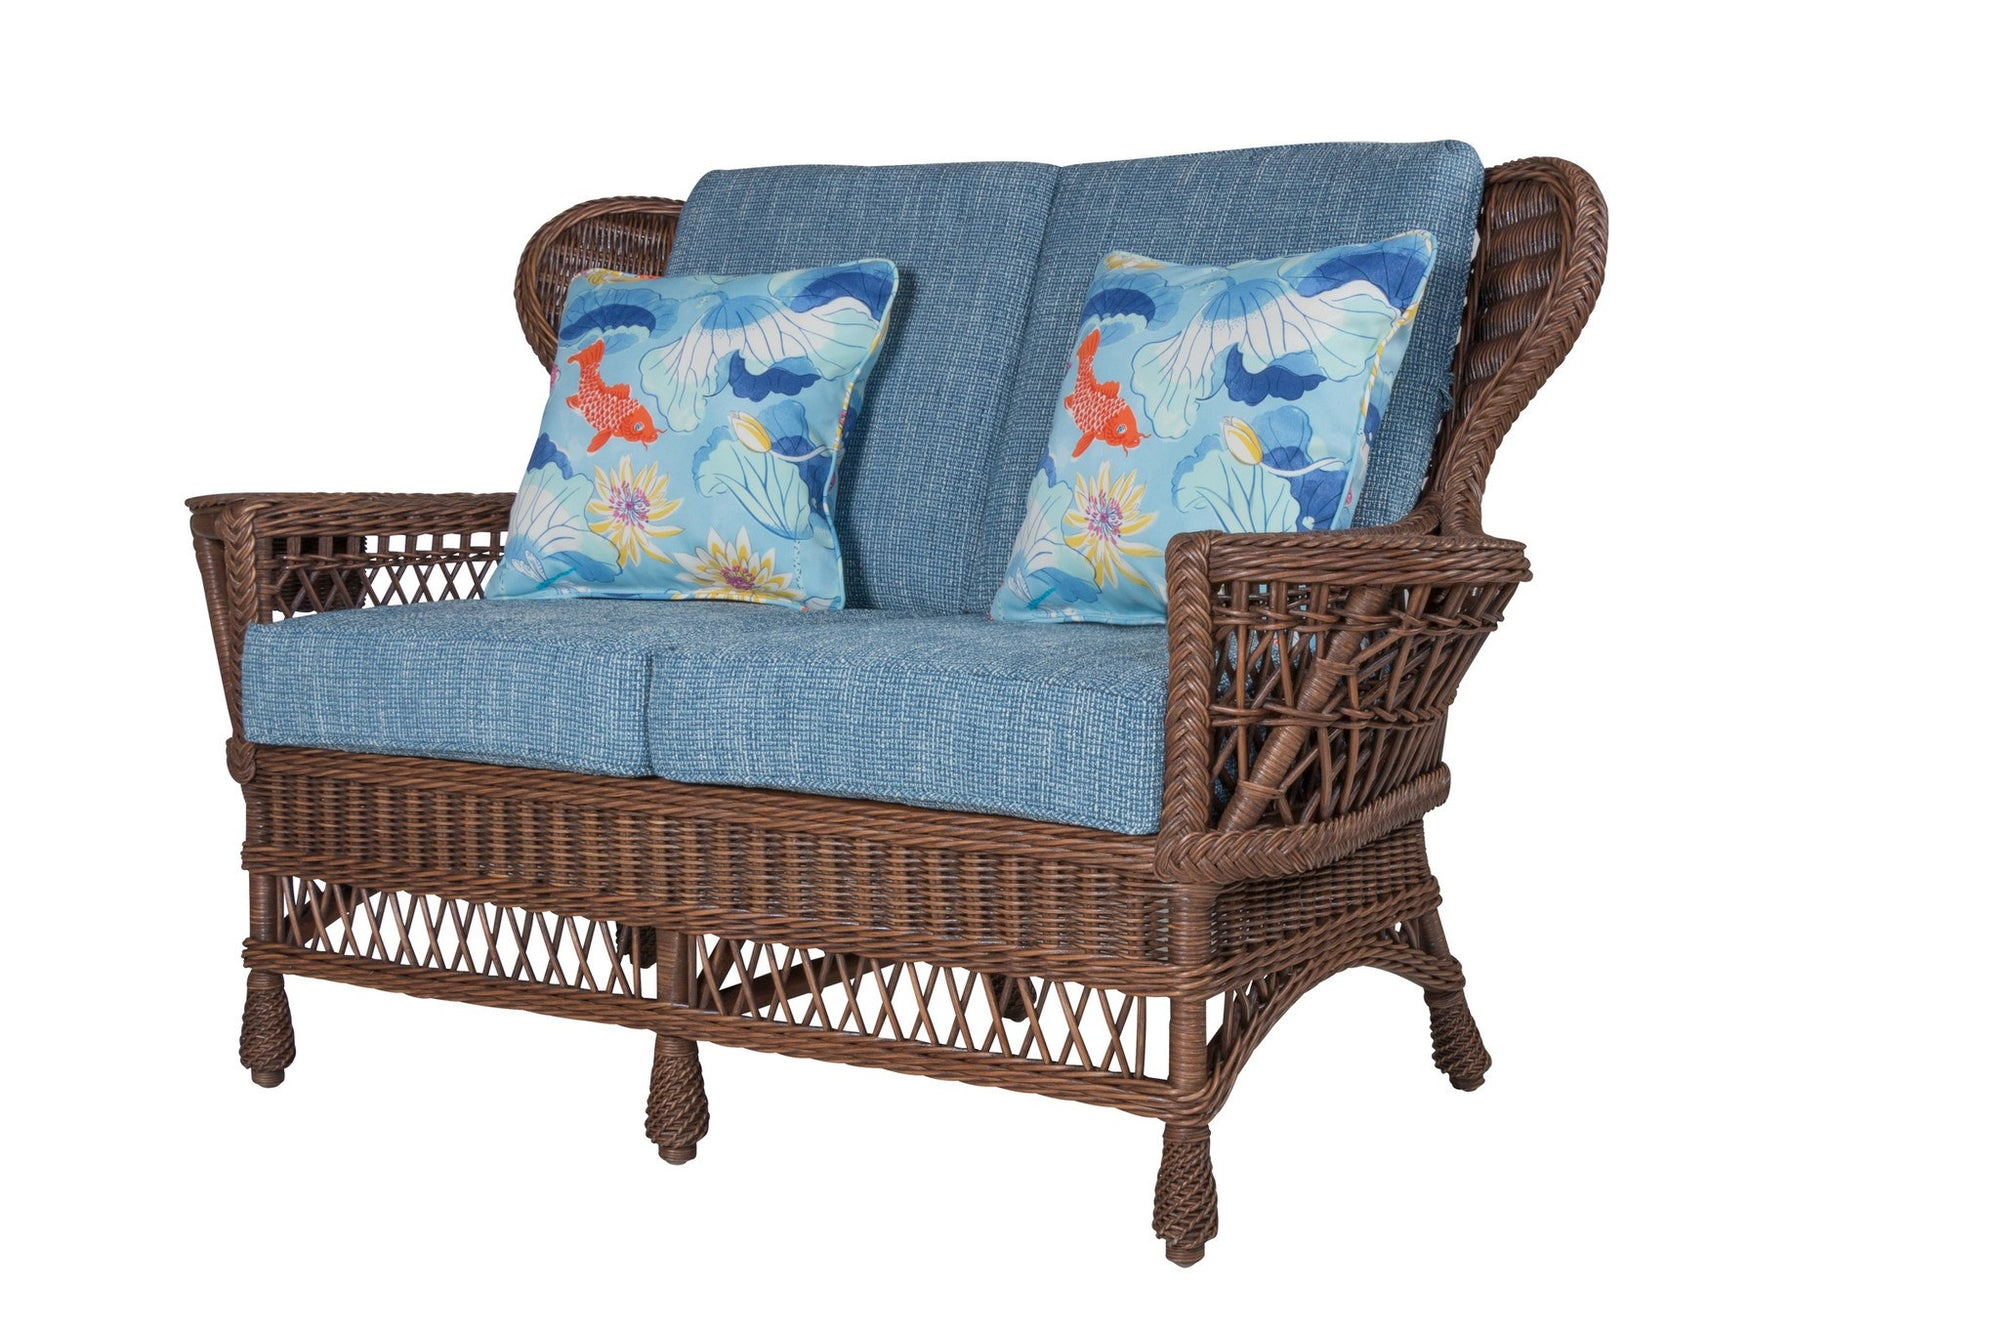 Designer Wicker & Rattan By Tribor Concord Loveseat by Designer Wicker from Tribor Loveseat - Rattan Imports